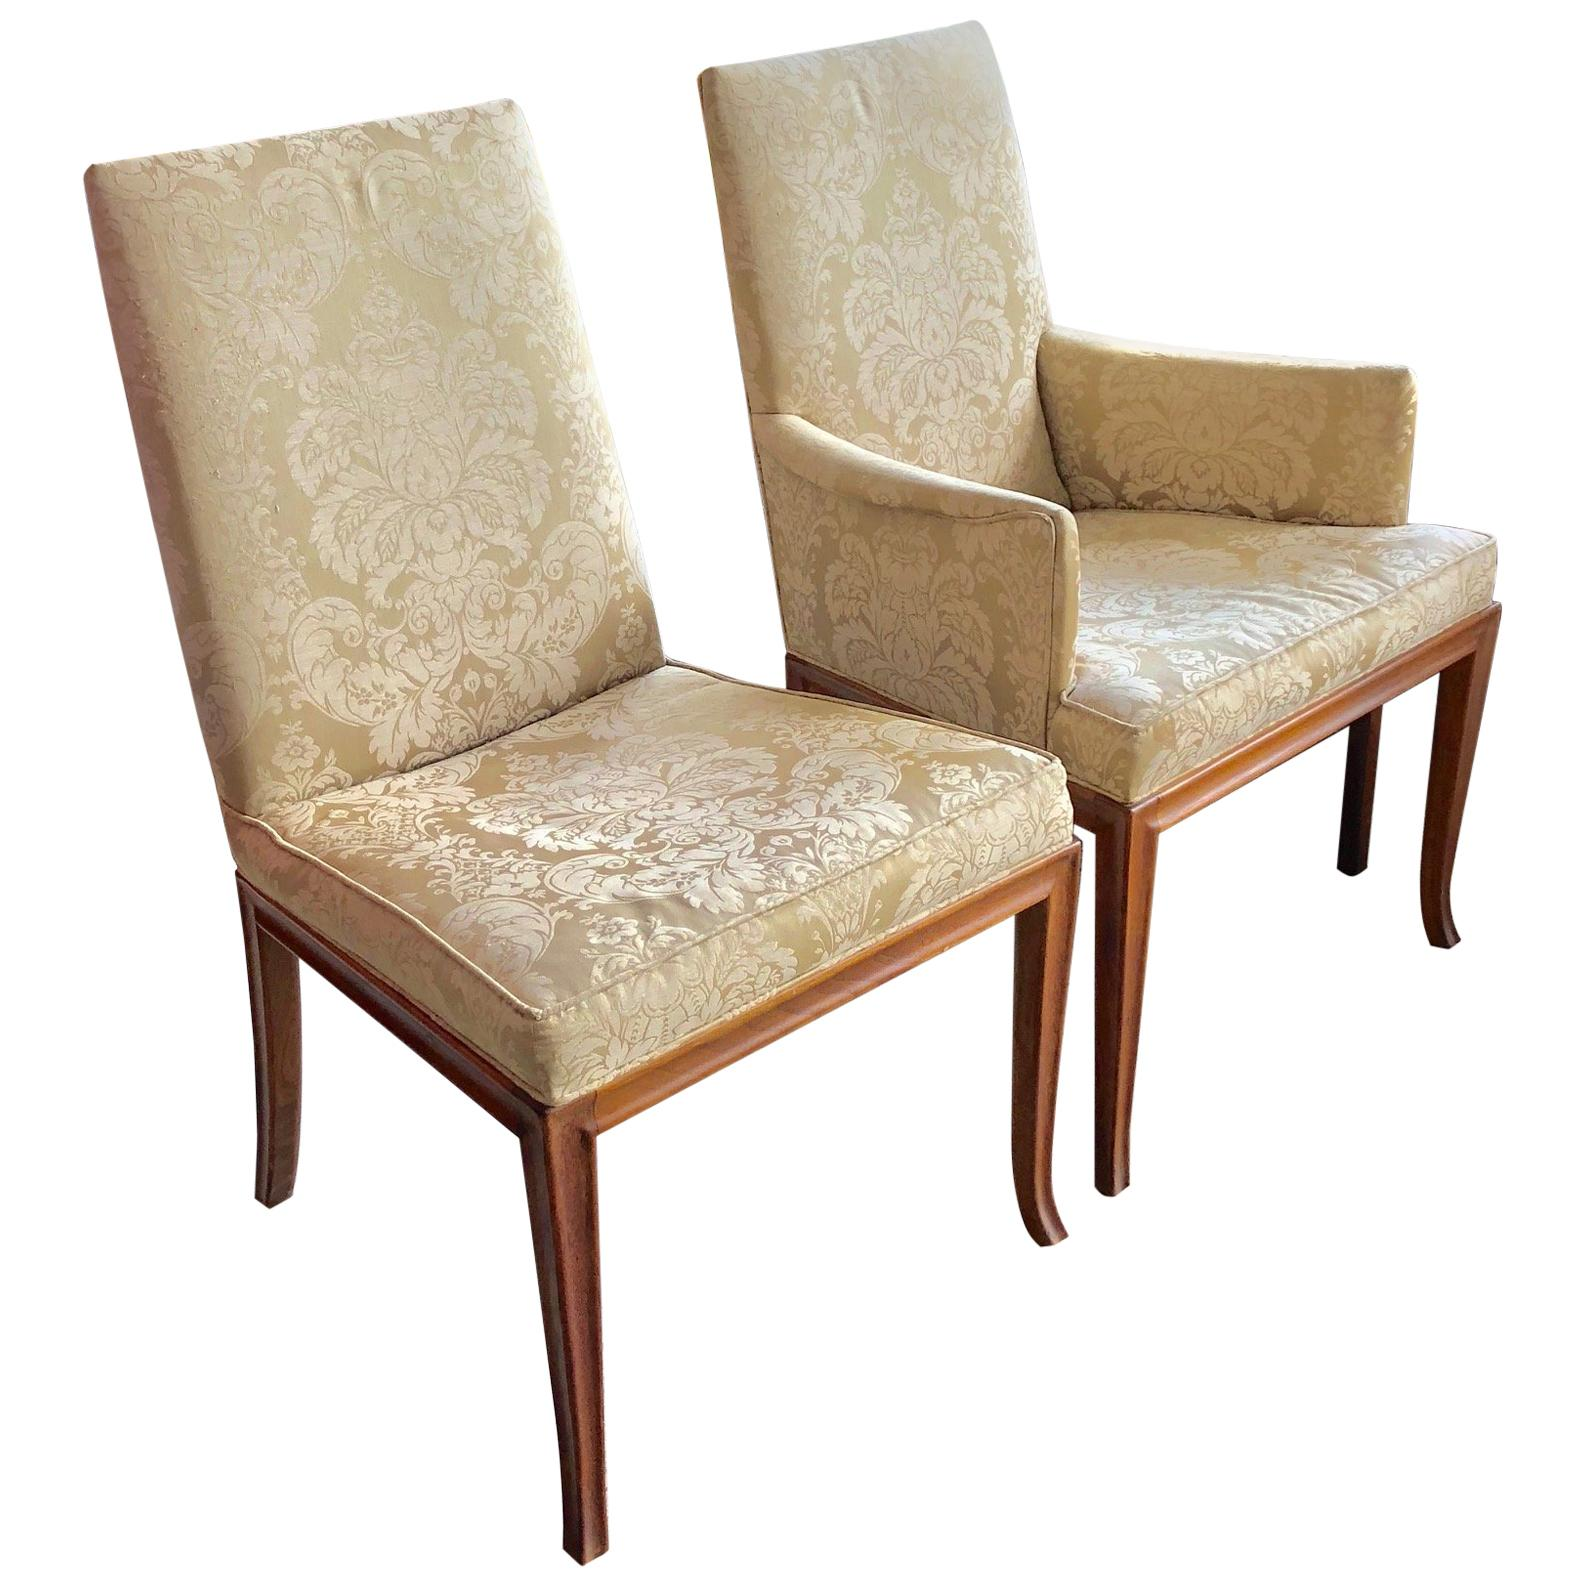 Charmant Two T.H.Robsjohn Gibbings For Baker Chairs, Circa 1961 For Sale